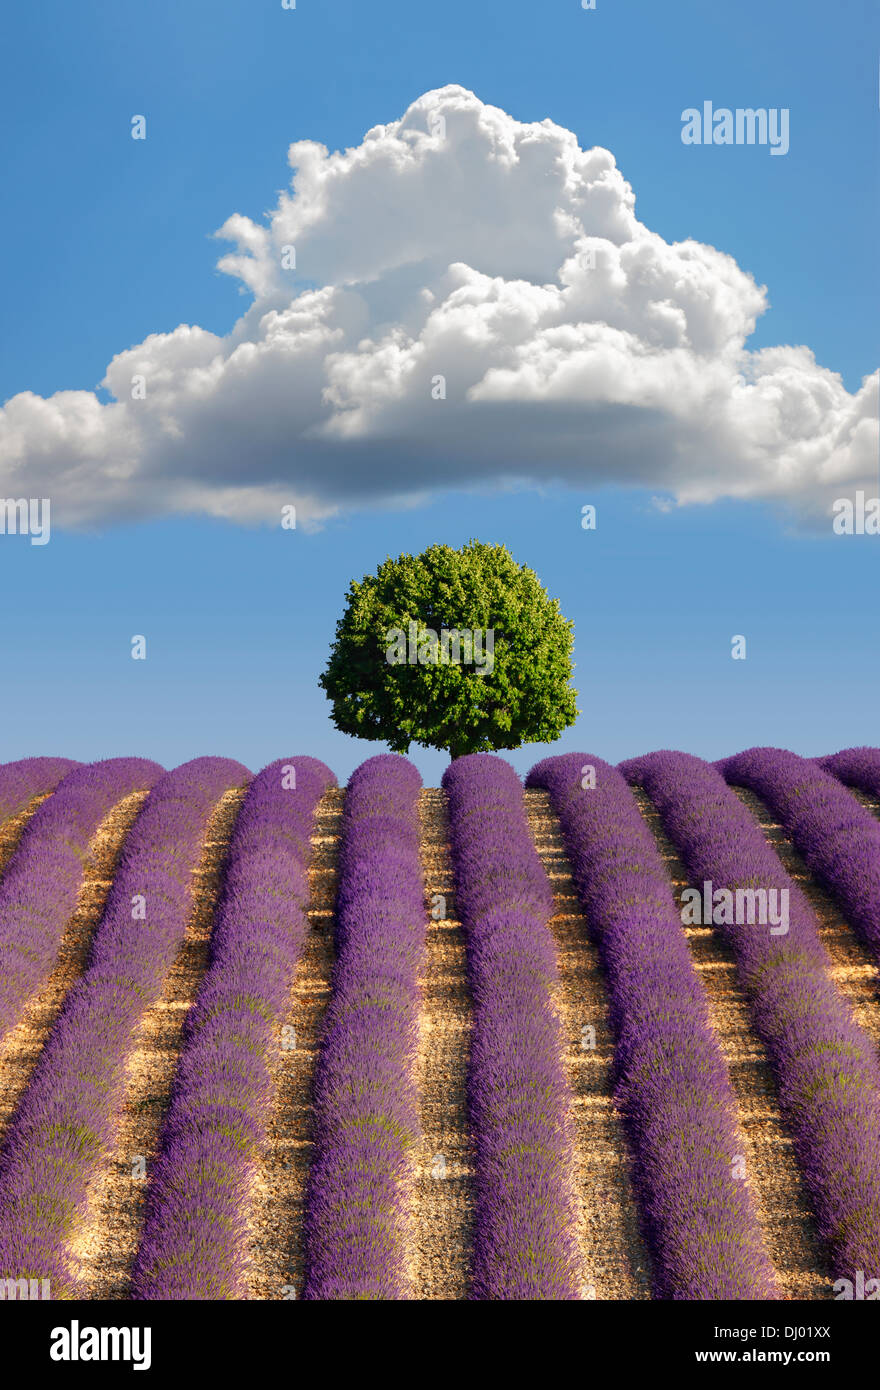 Lavender field, Provence - Stock Image